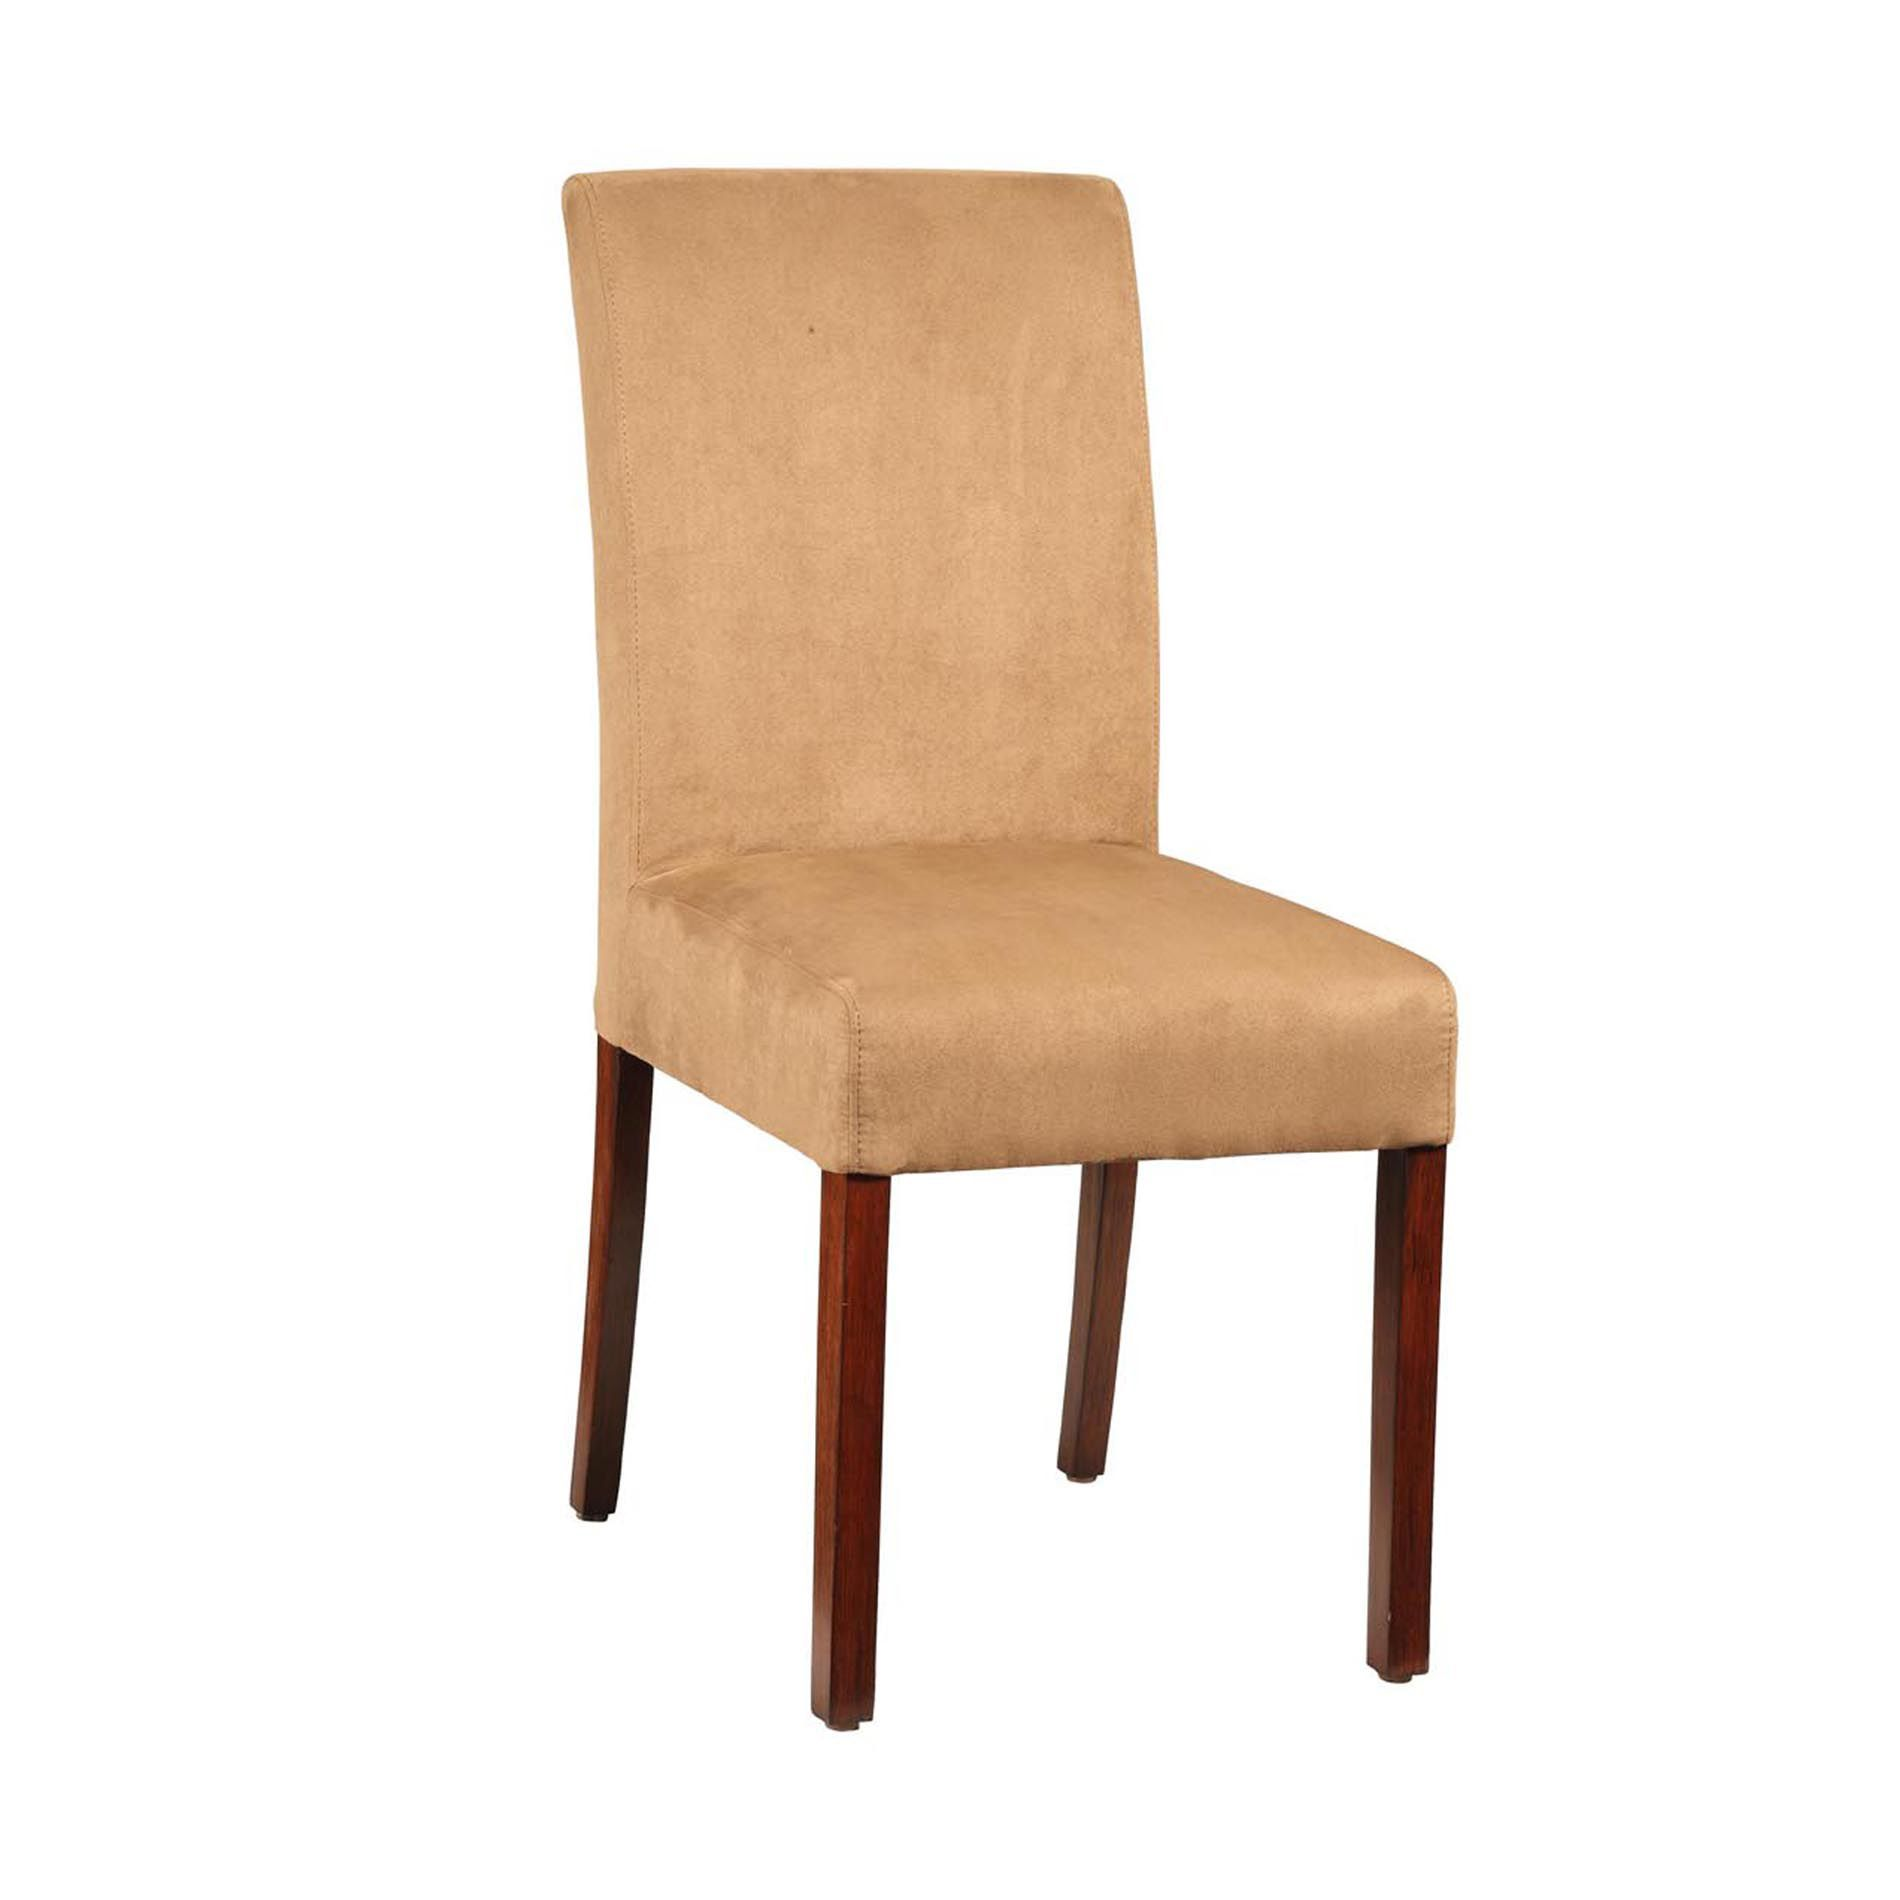 Kmart Dining Chairs Essential Home Microfiber Parsons Chair Home Furniture